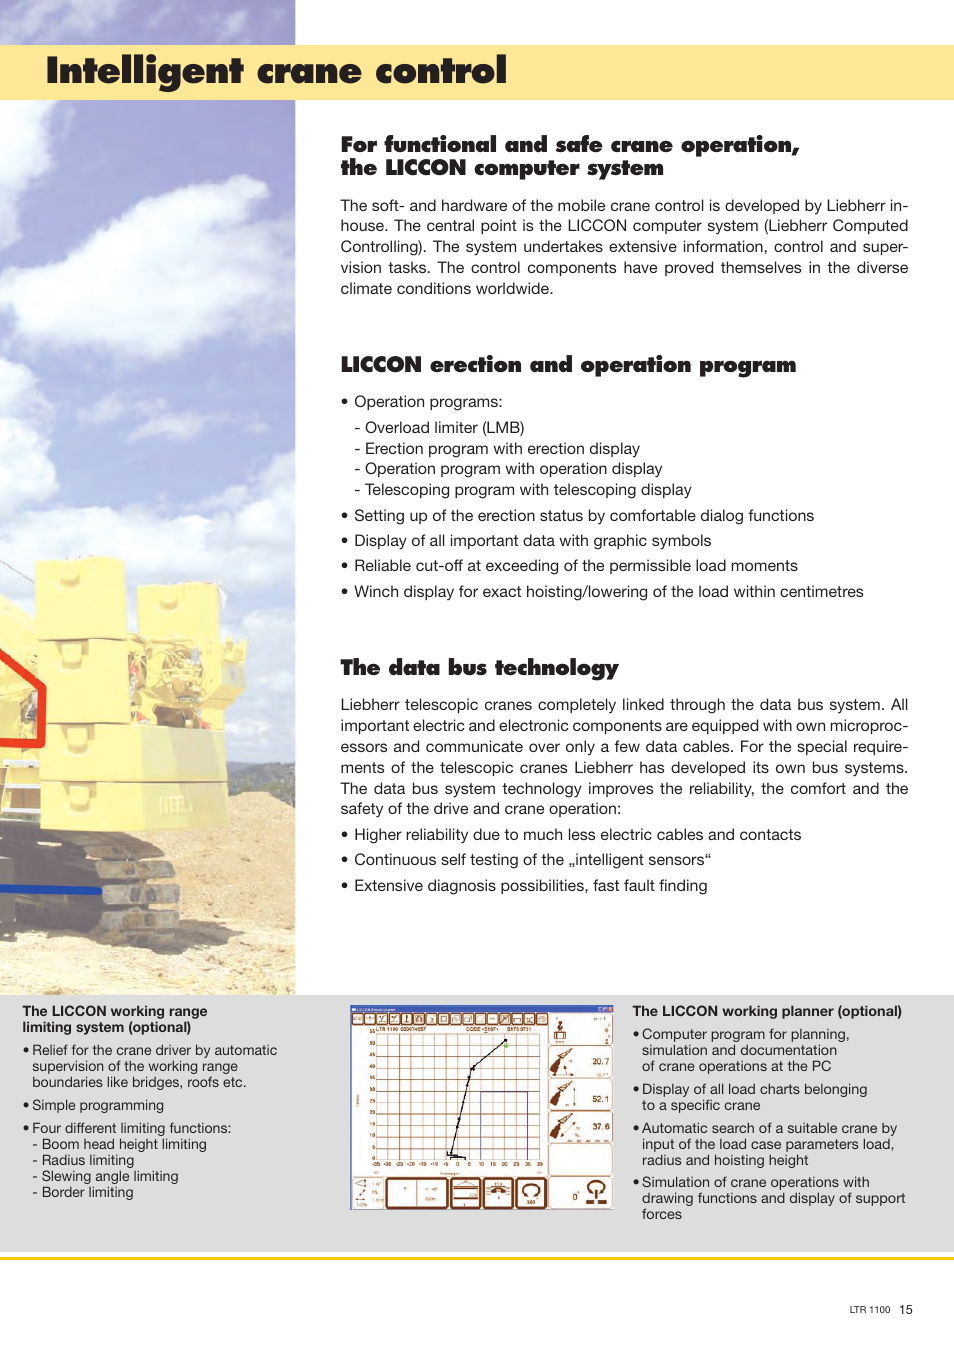 Intelligent crane control, Liccon erection and operation program, The data  bus technology | Liebherr LTR 1100 User Manual | Page 15 / 16